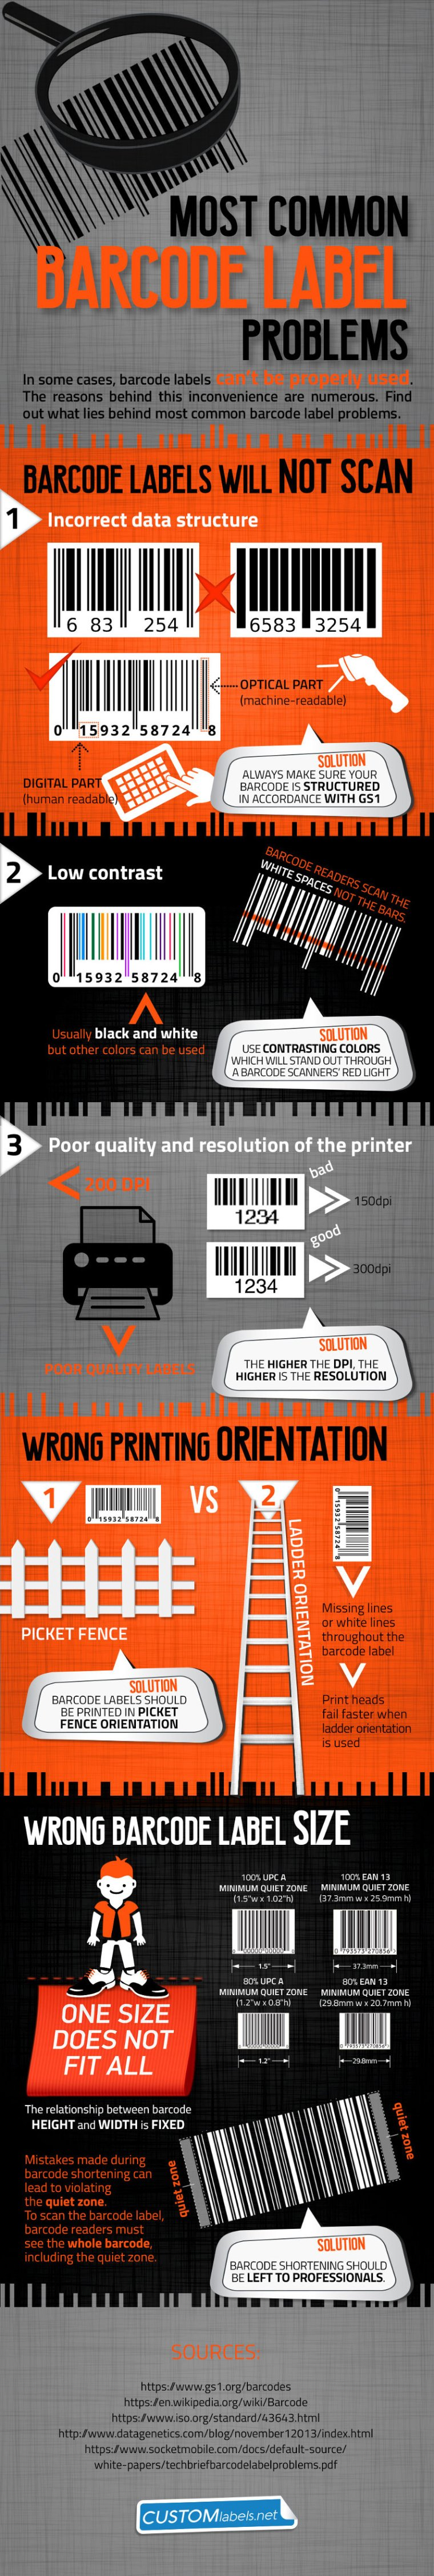 Most Common Barcode Label Problems You Can Easily Solve  Infographic